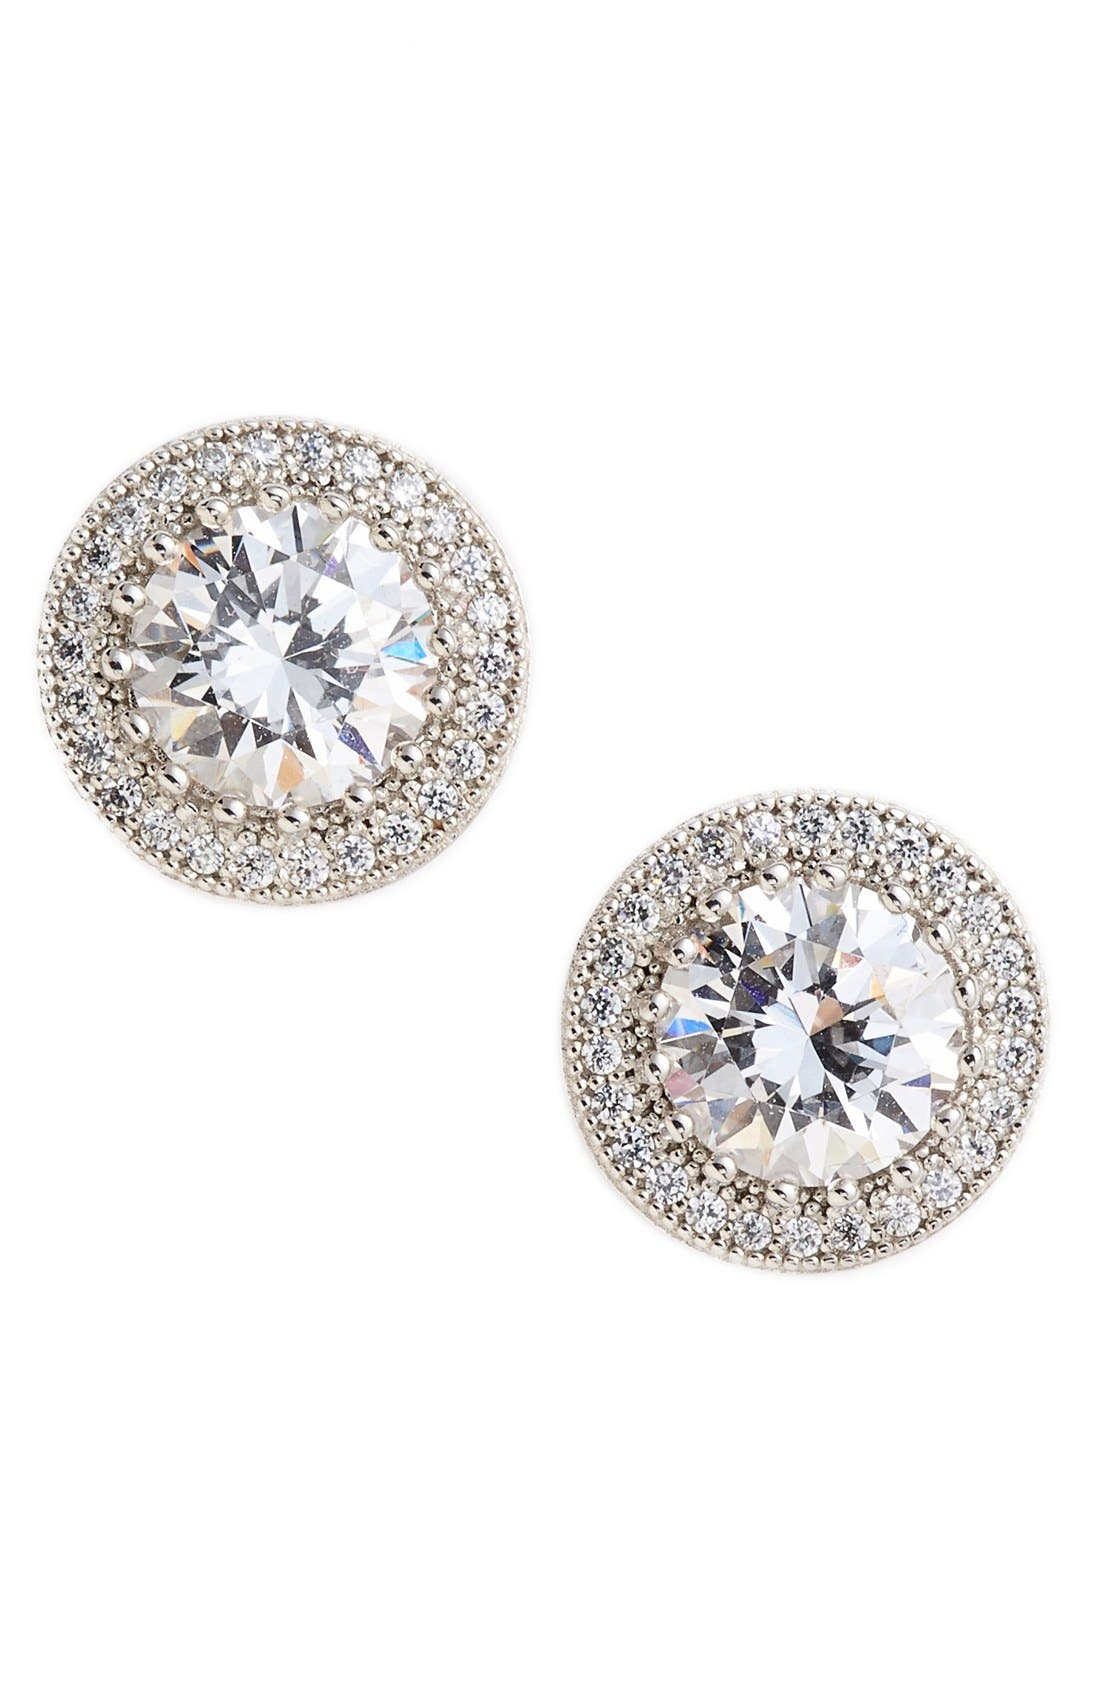 Main Image - Lafonn 'Lassaire' Stud Earrings